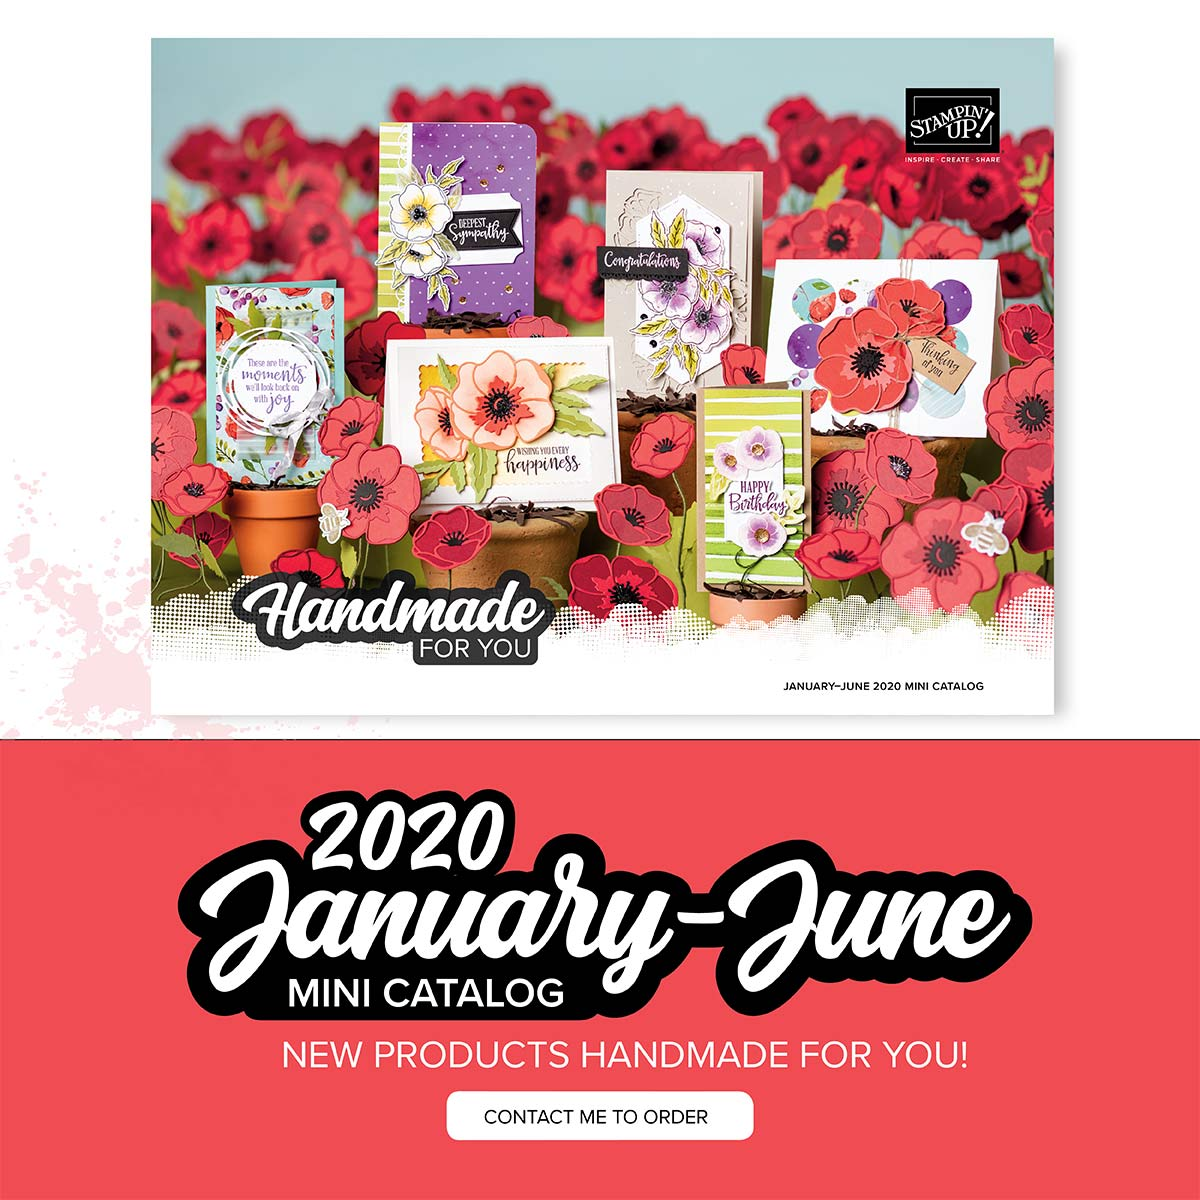 June-July Mini-Catalog